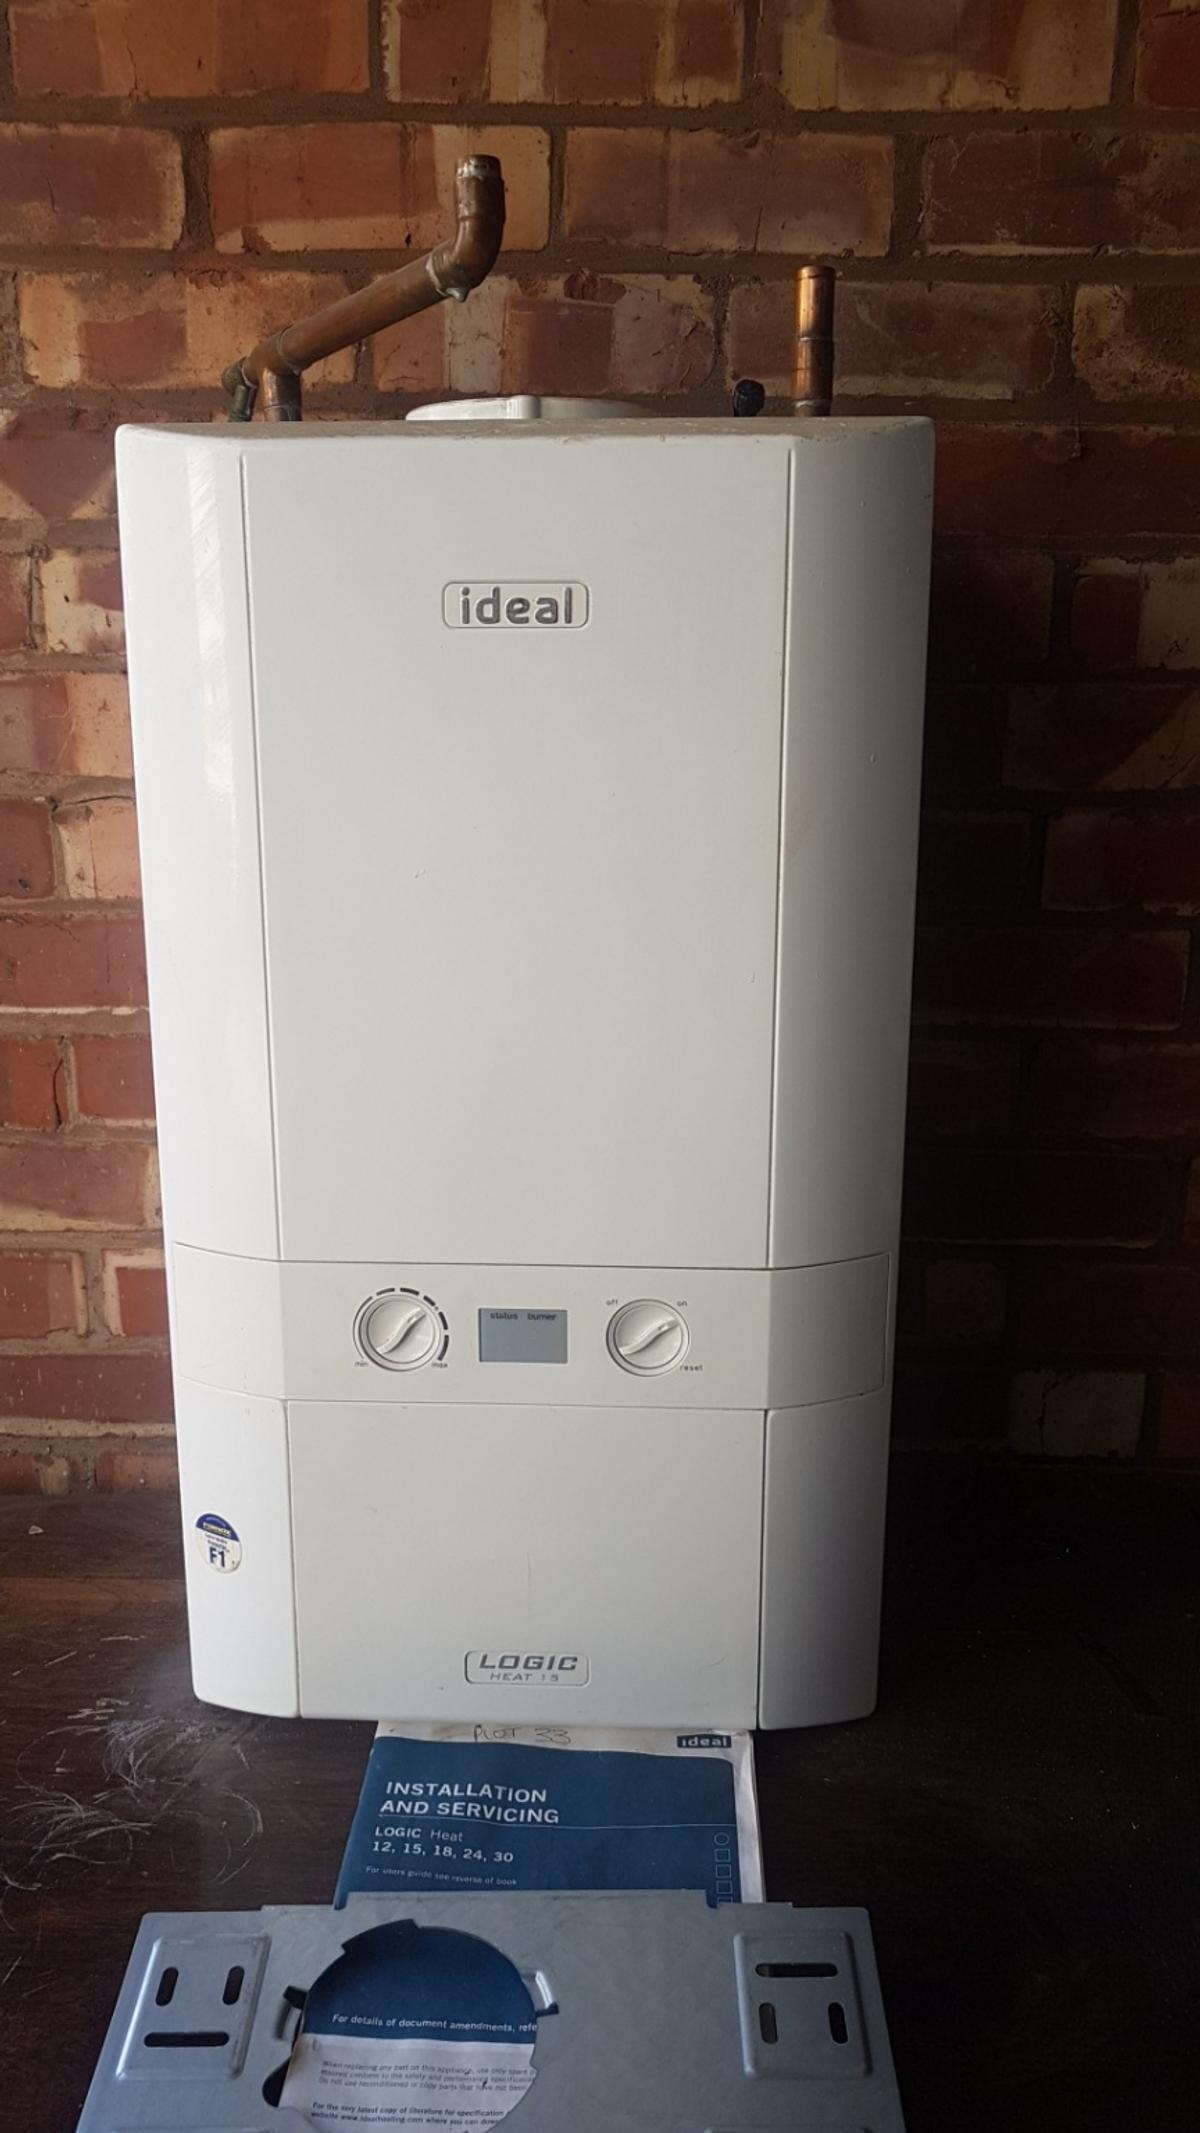 Ideal logic heat 15, heat only boiler with hanging bracket and installation manual. removed for upgrade to combi was working when removed. buyer must collect.